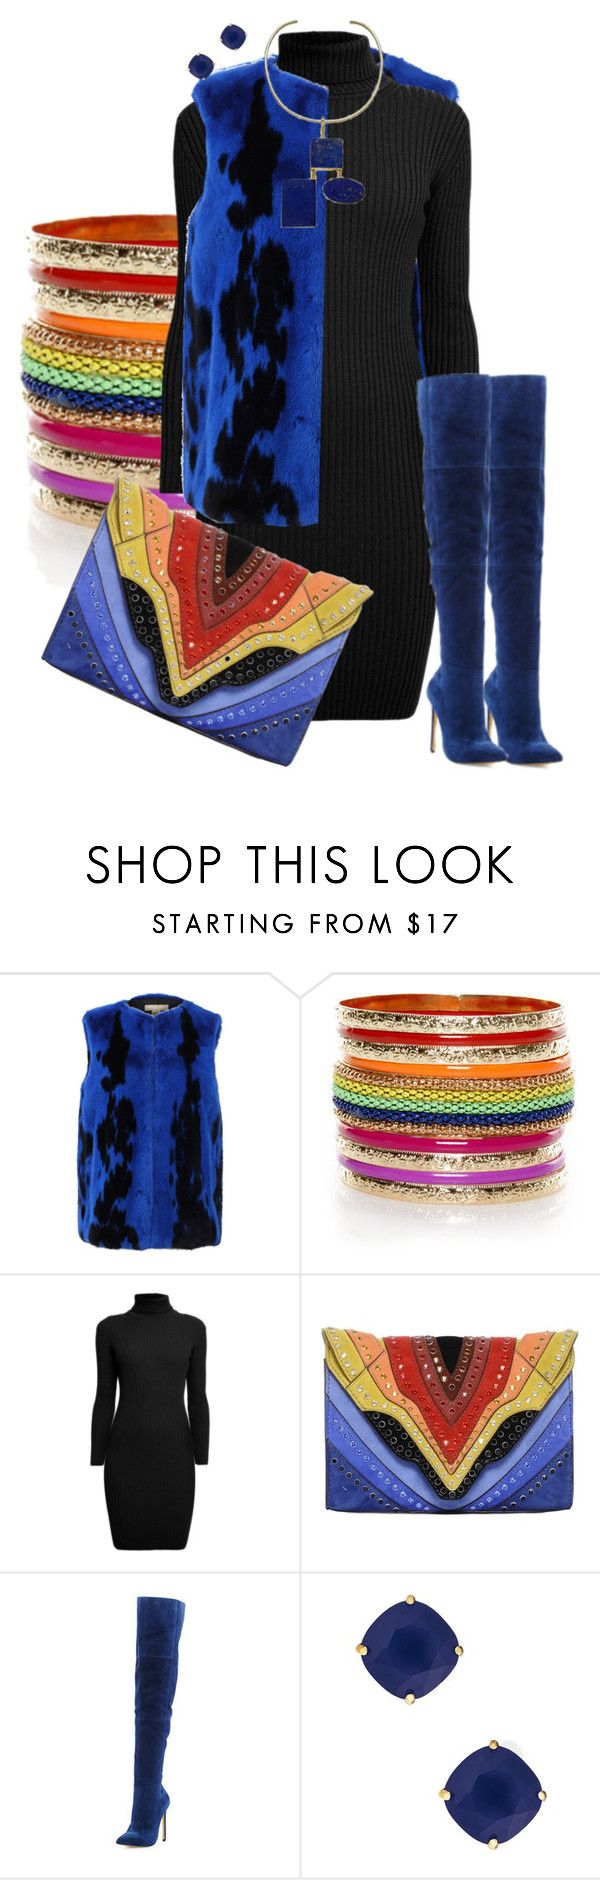 """""""Rainbow Clutch"""" by hope-houston on Polyvore featuring Michael Kors, Rumour London, Elena Ghisellini, Neiman Marcus and Kate Spade"""